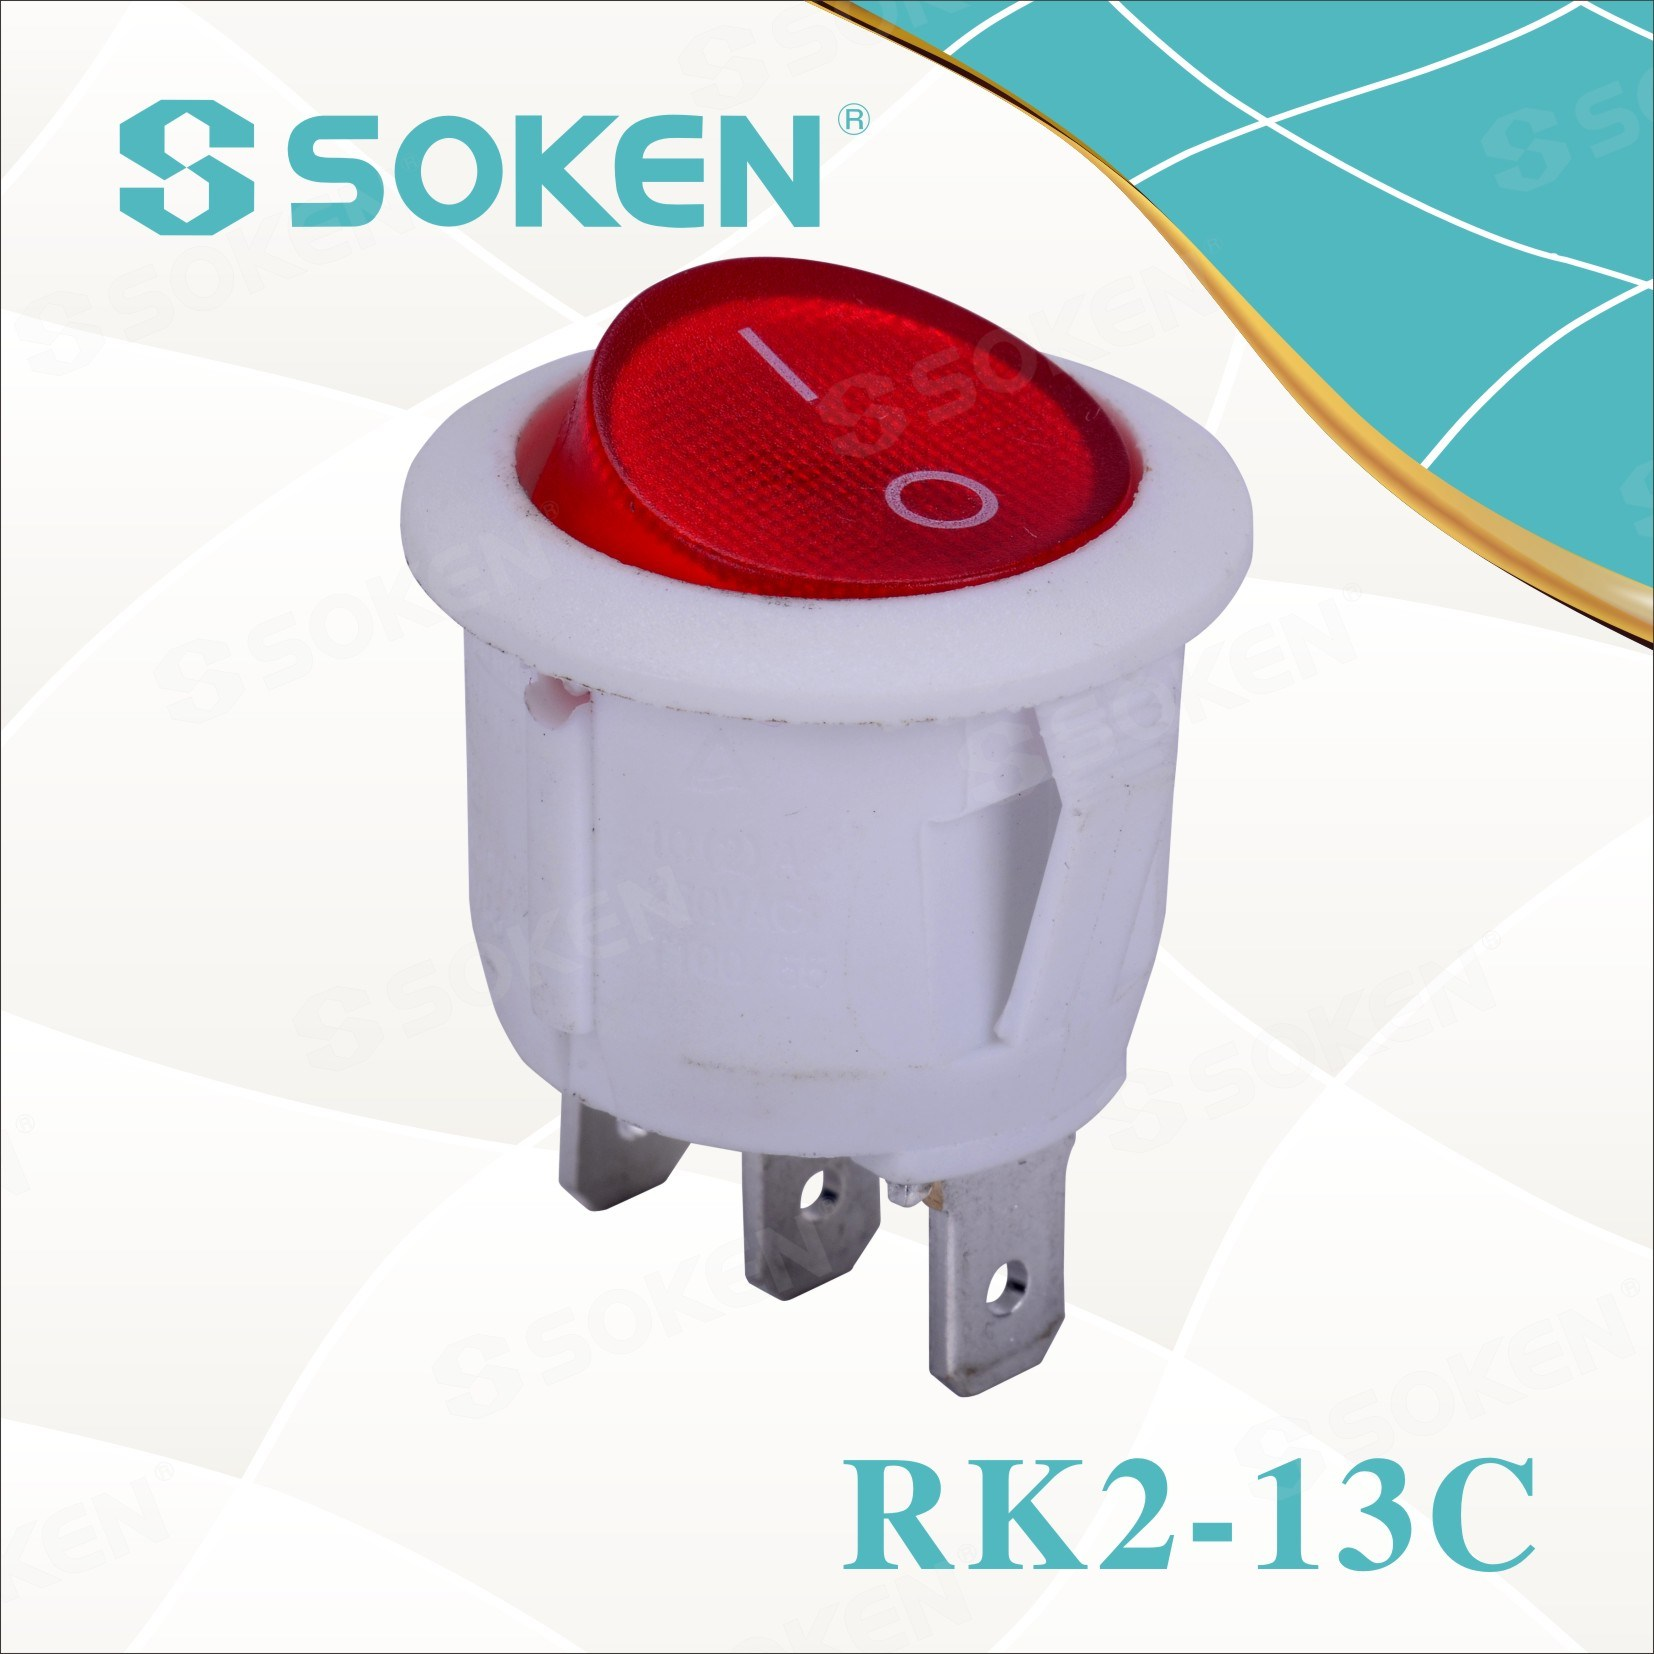 Soken Rk2-13c Kolo na off Rocker Switch